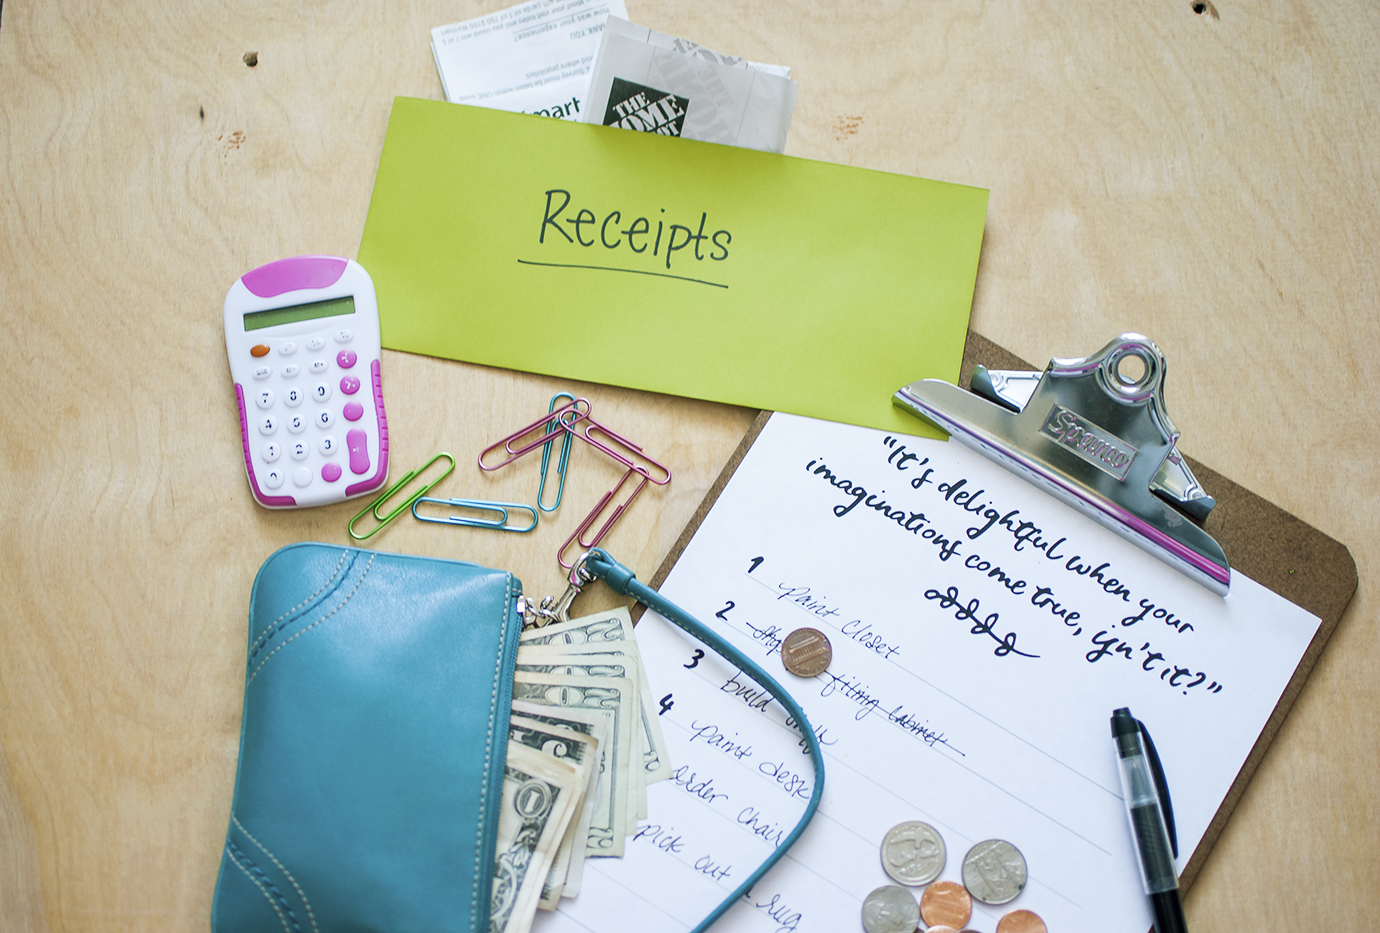 Aqua Blue Wallet with Paper Money and Coins Clipboard with Project Checklist and Receipts Envelope | Budget Saving Tips For Home Remodel Projects